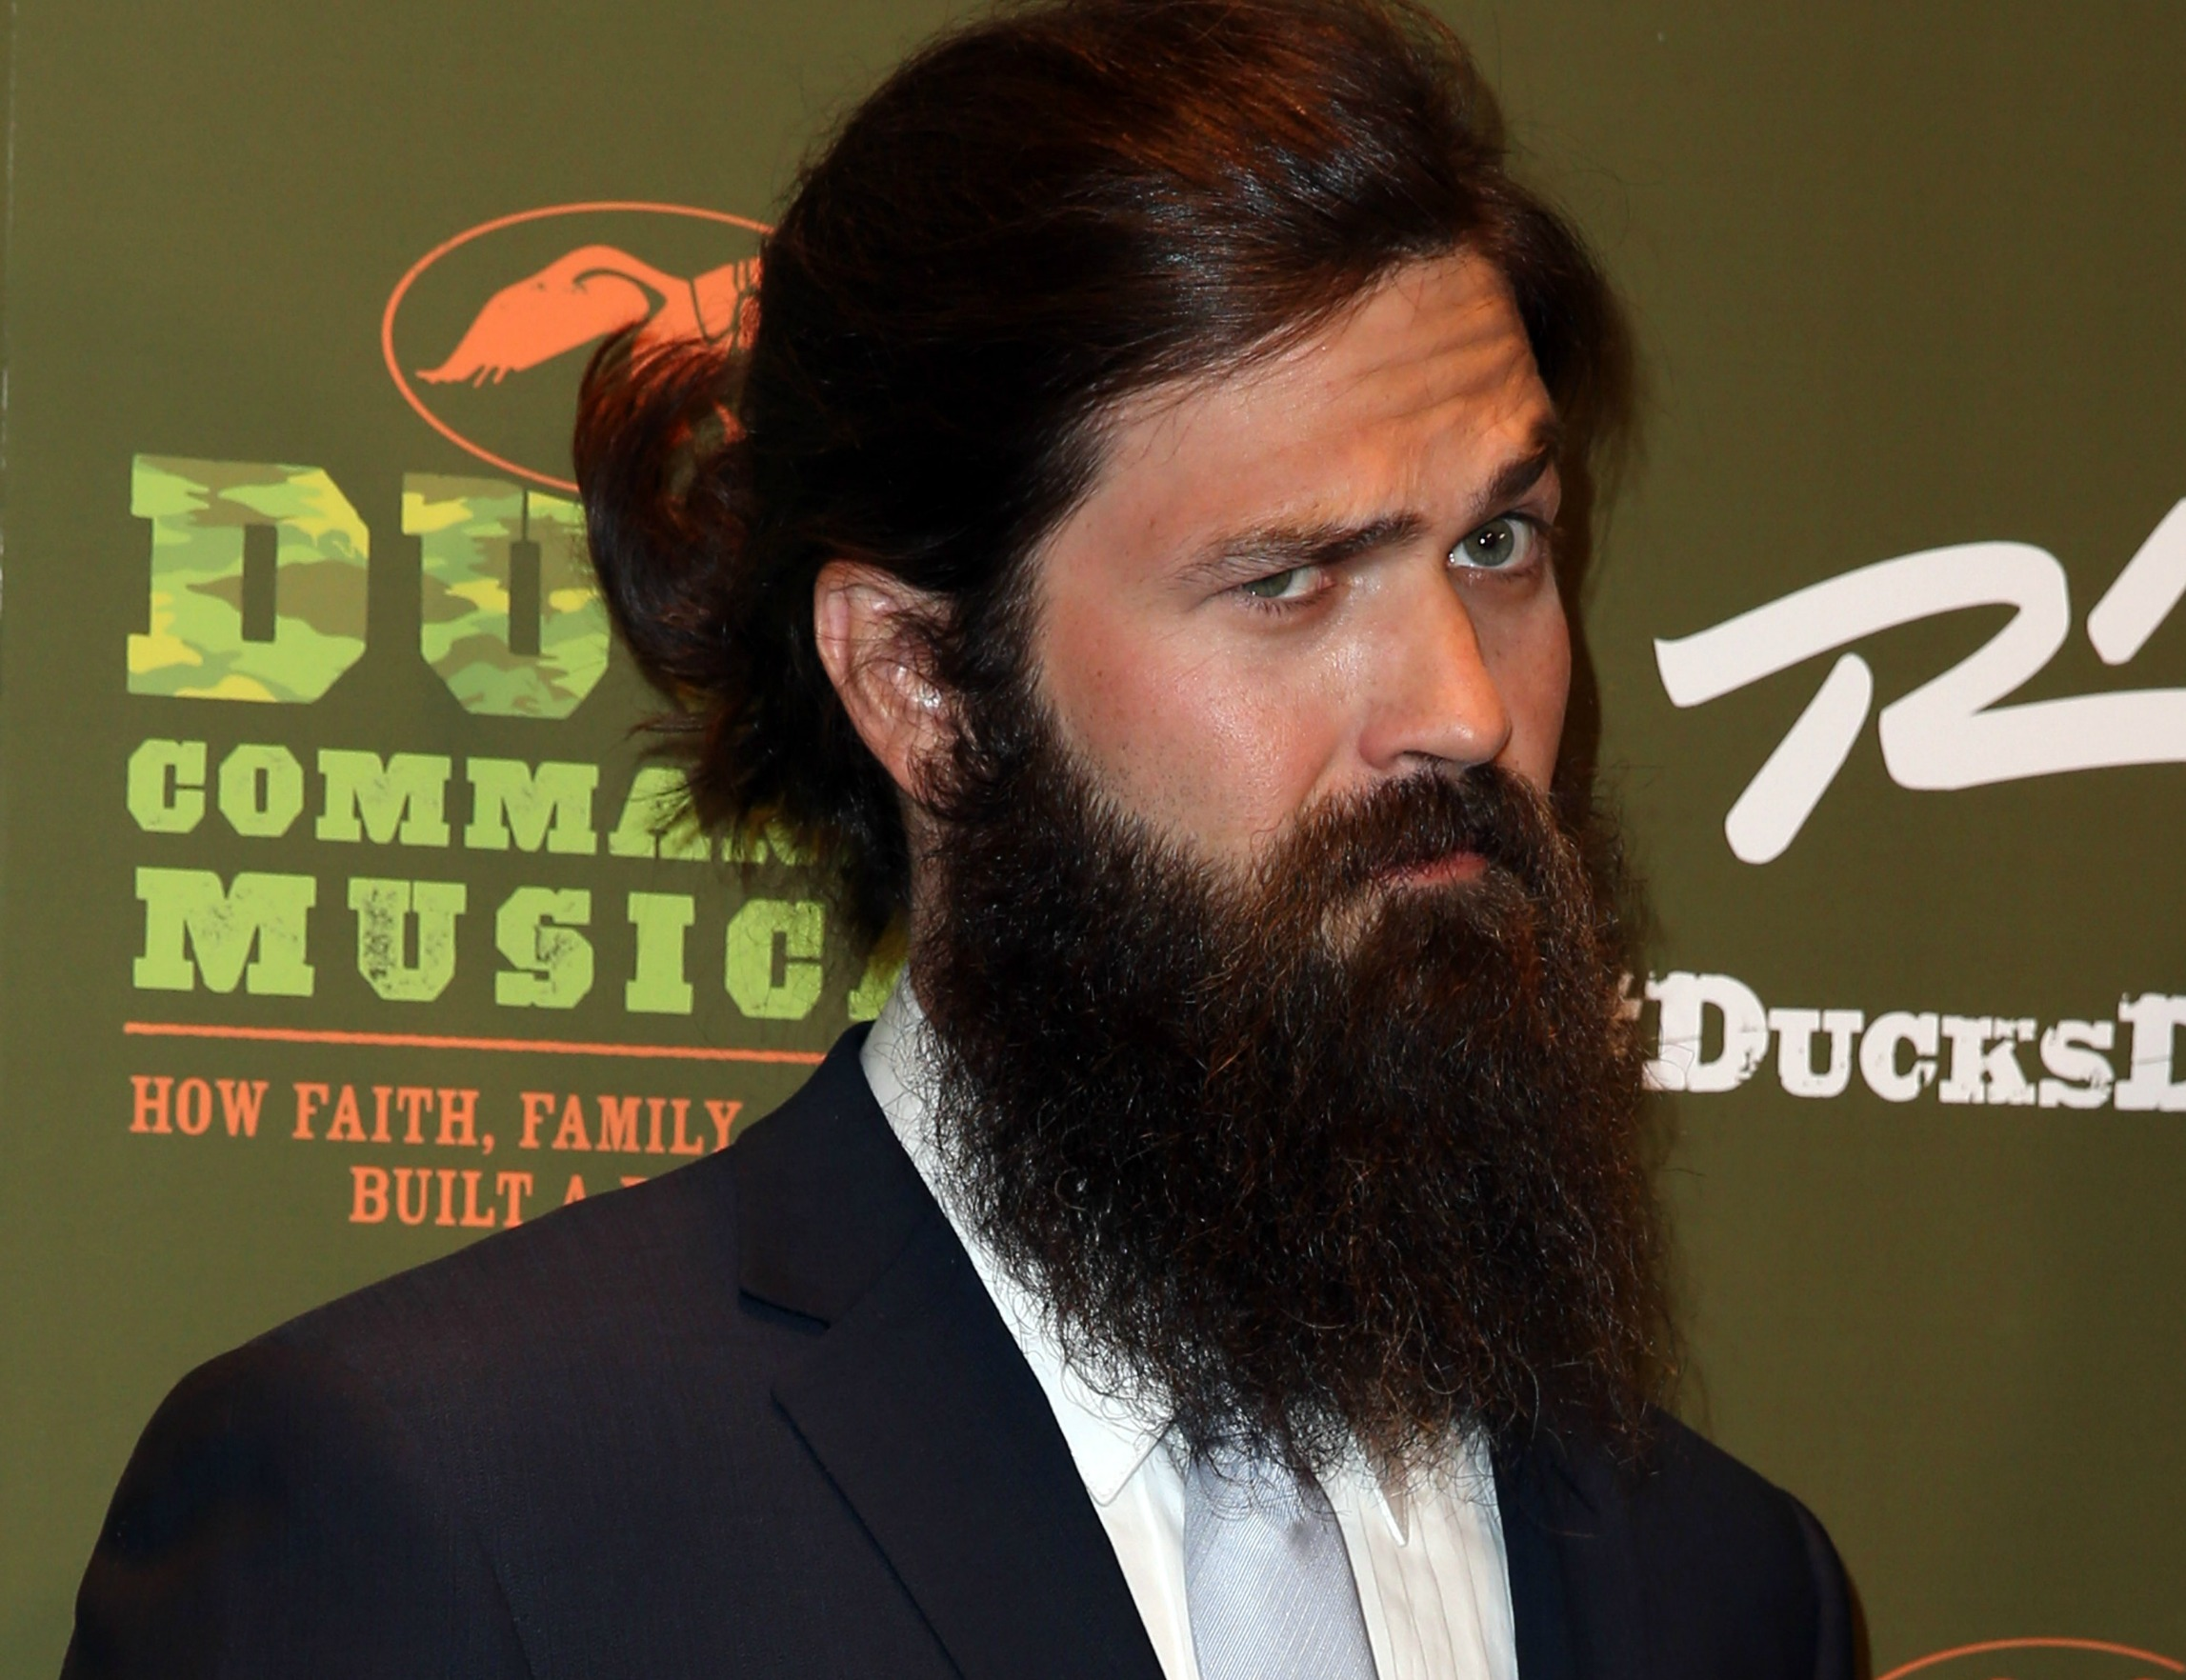 Man Crush Monday 18 Photos Of Duck Dynasty Bearded Hunk Jep